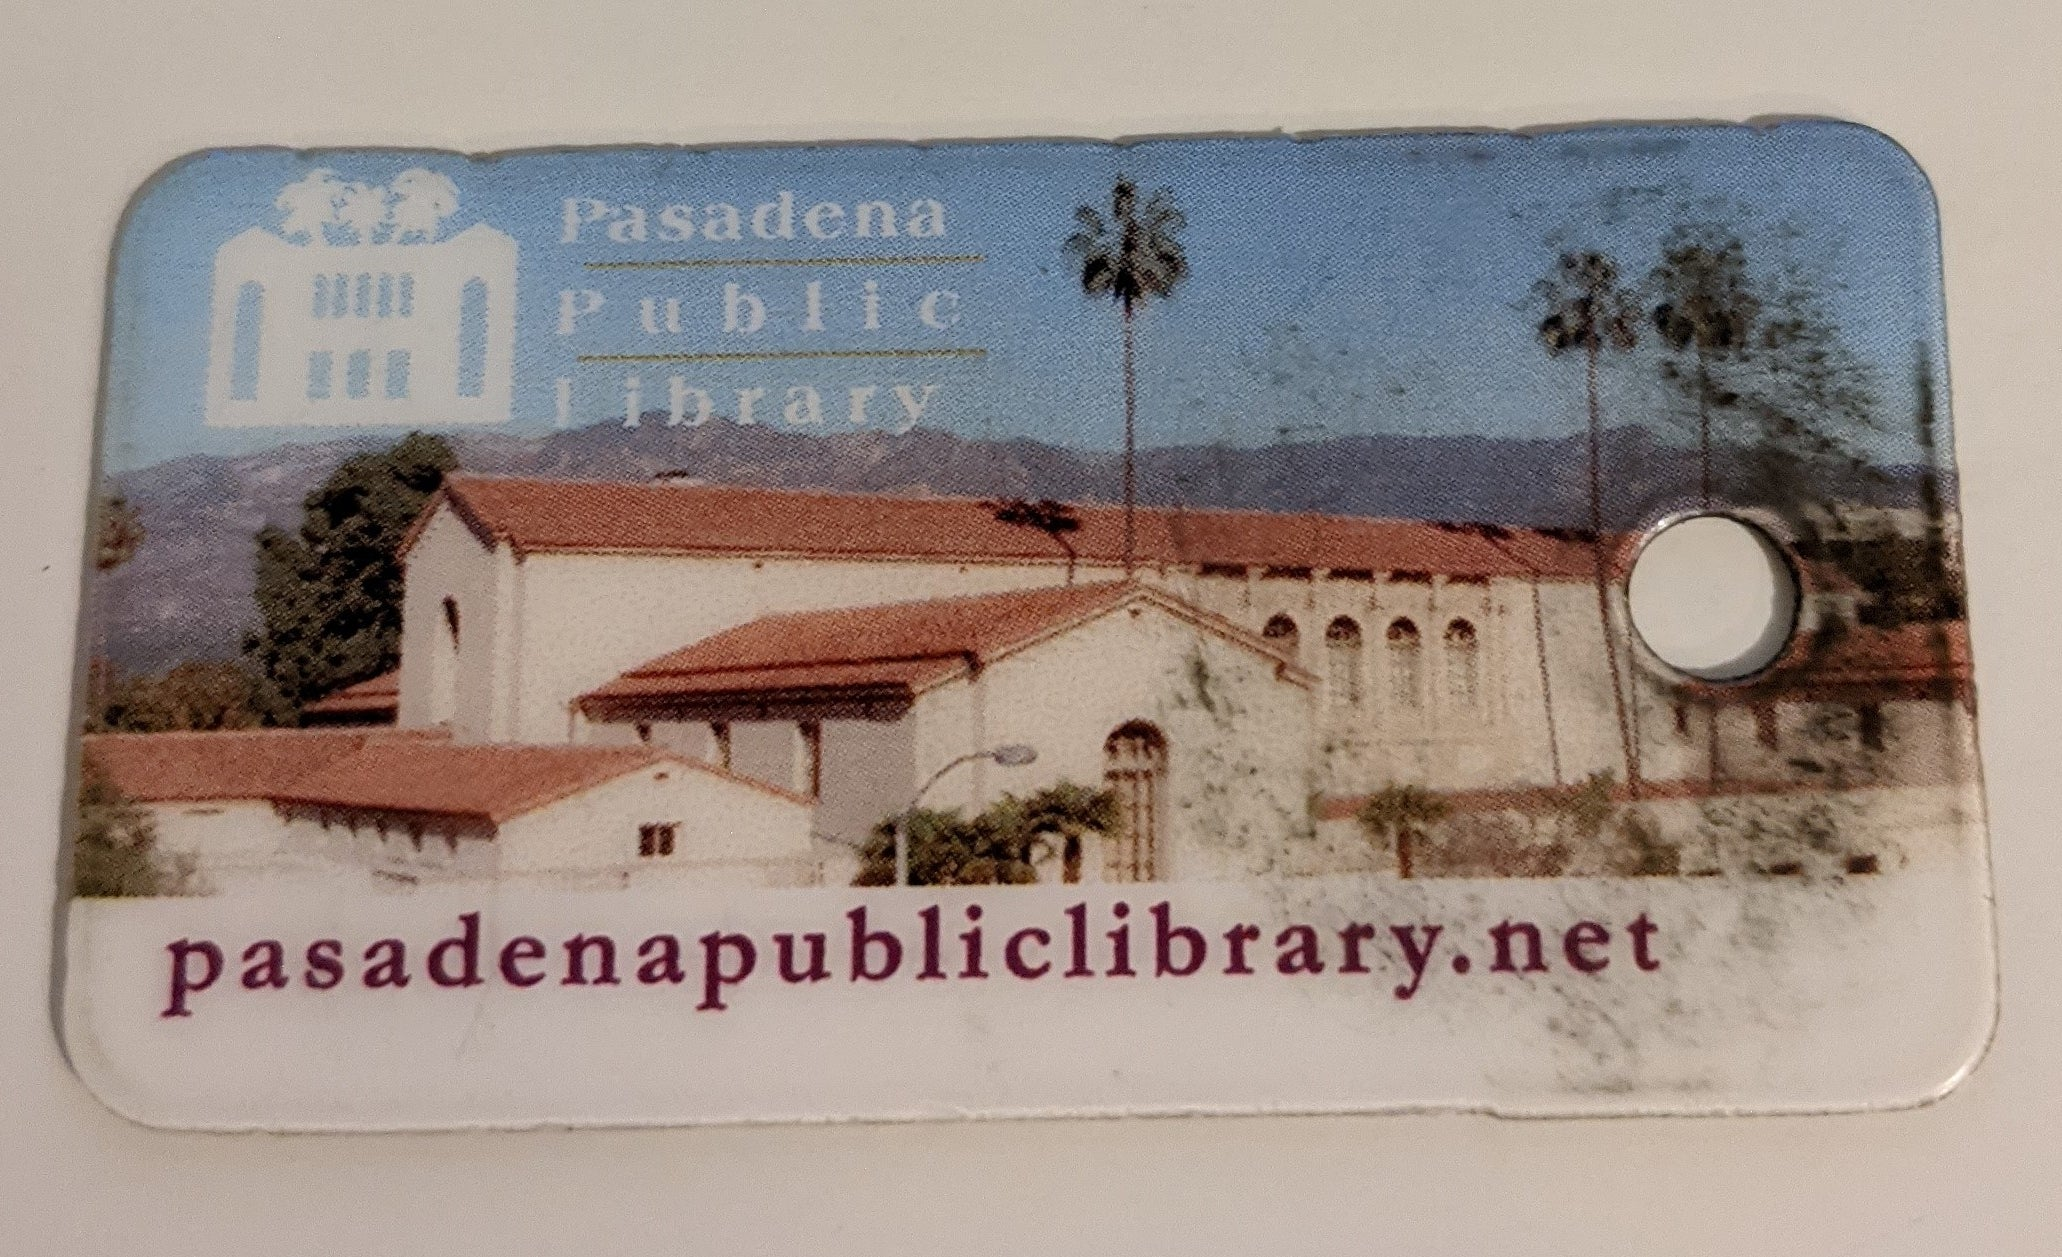 My well-loved library card